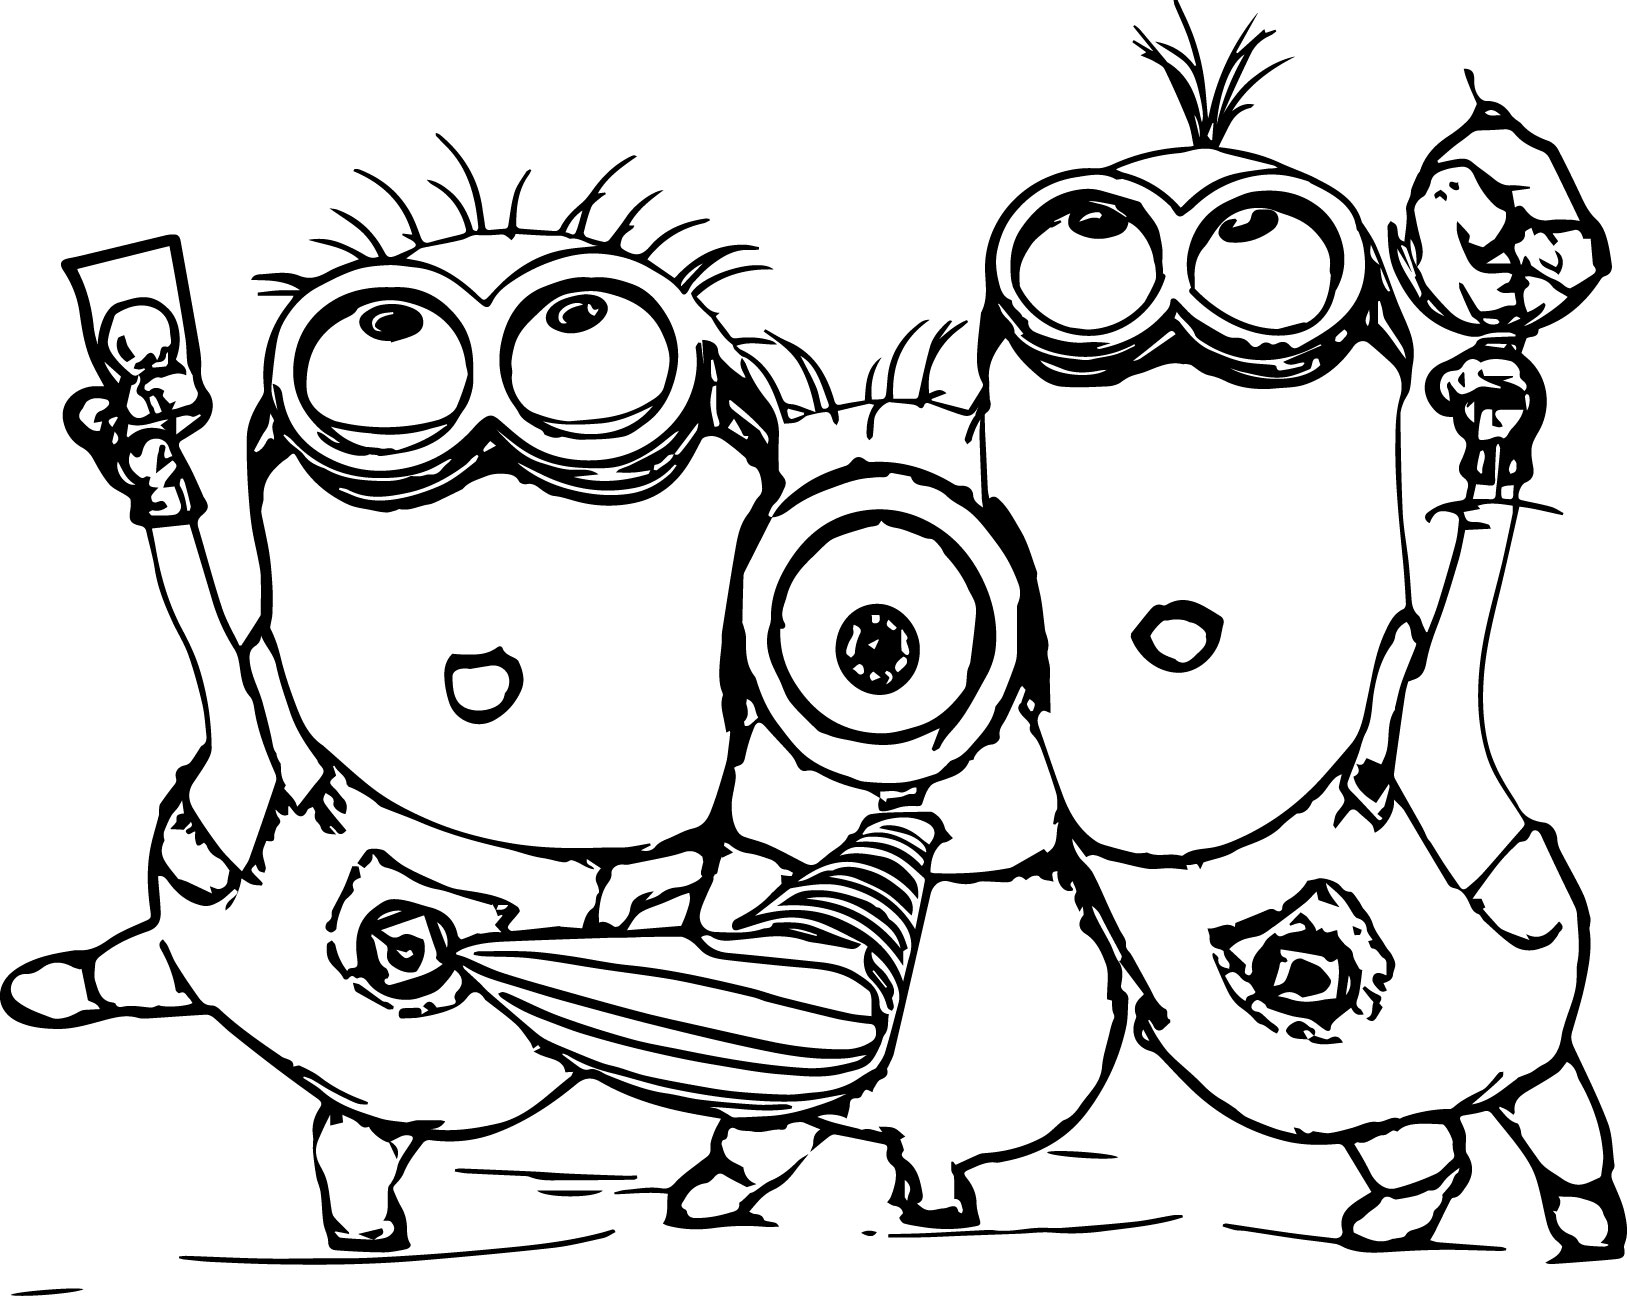 Vampire minion coloring pages download and print for free Coloring books for 12 year olds